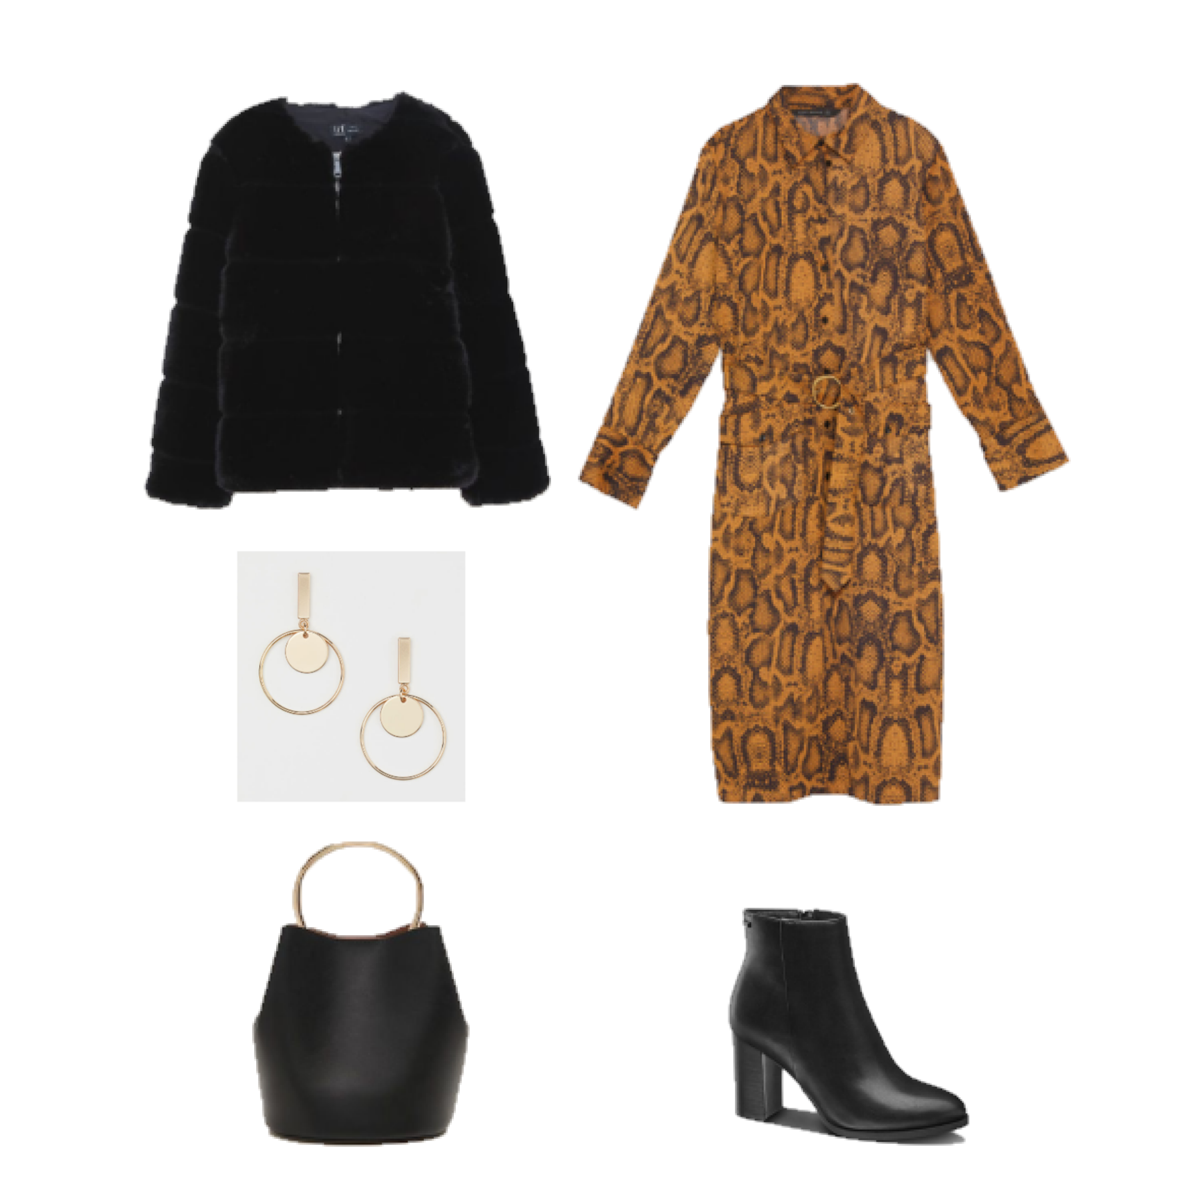 Outfit of the Day: A Snake Print Dress